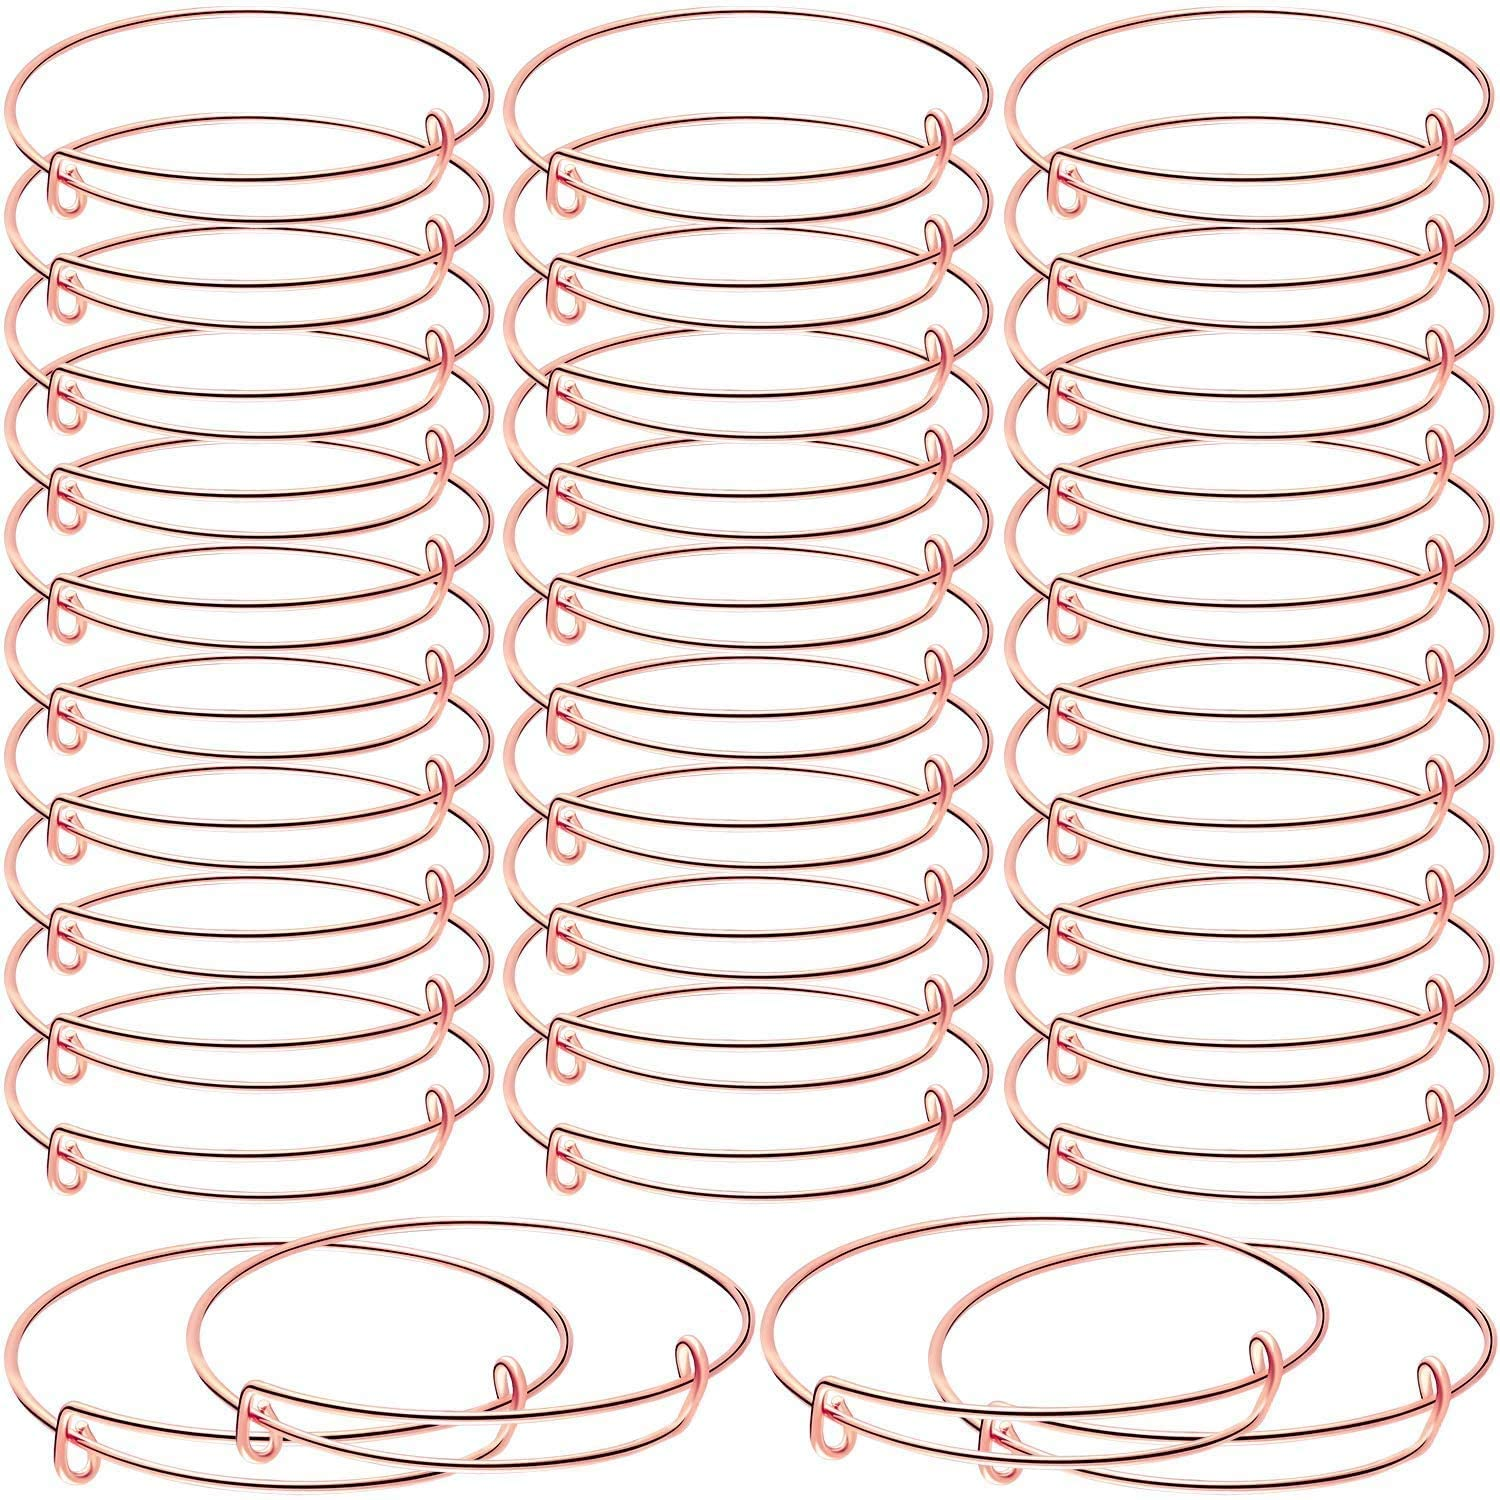 30 Pieces Expandable Bangle Bracelets Adjustable Wire Blank Bangles Metal Bracelets for DIY Jewelry (Rose Gold)